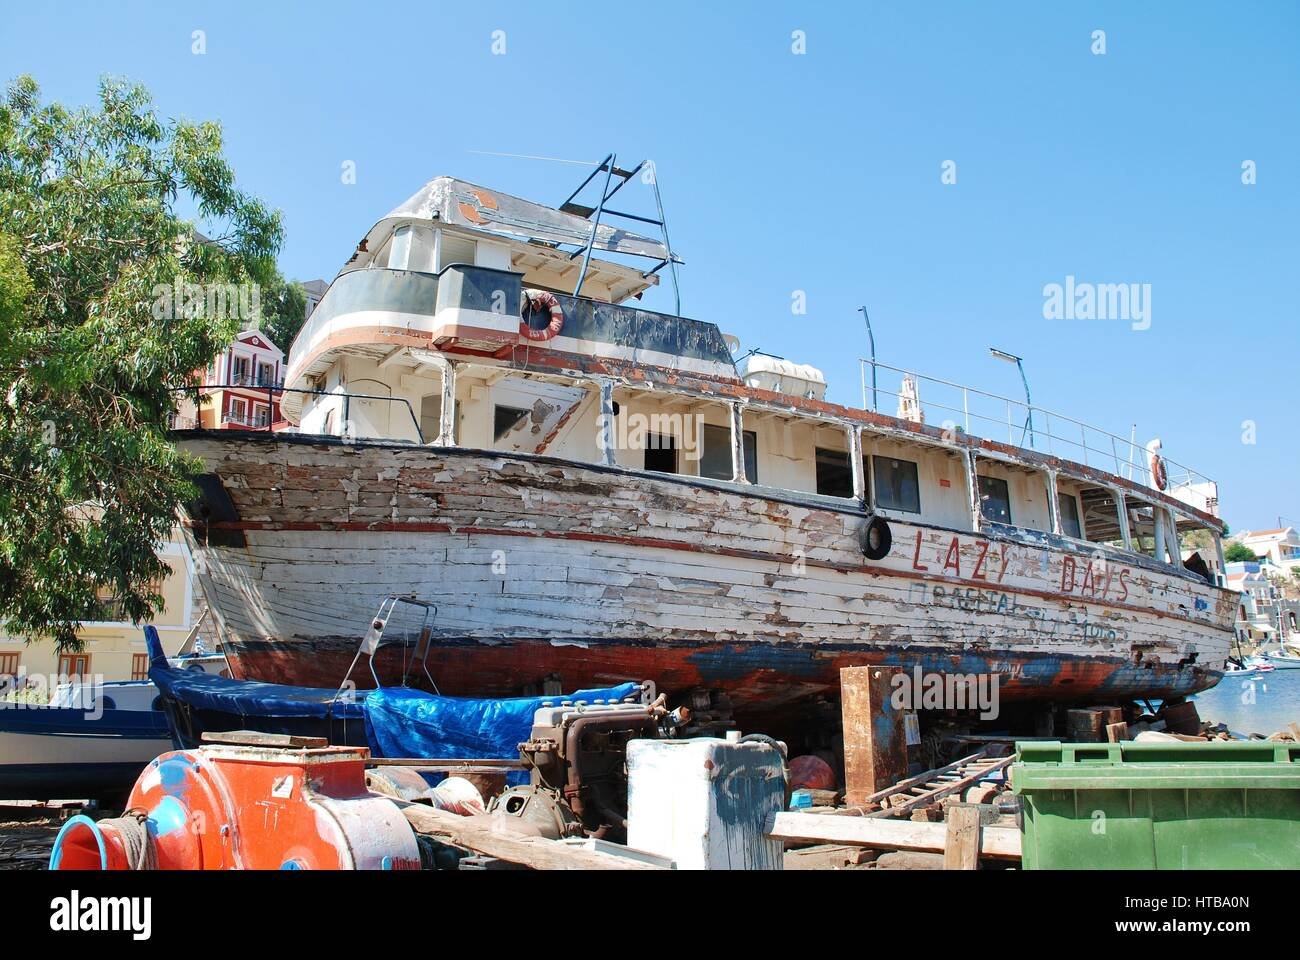 The crumbling remains of former excursion boat Lazy Days in the boat yard at Yialos on the Greek island of Symi. - Stock Image